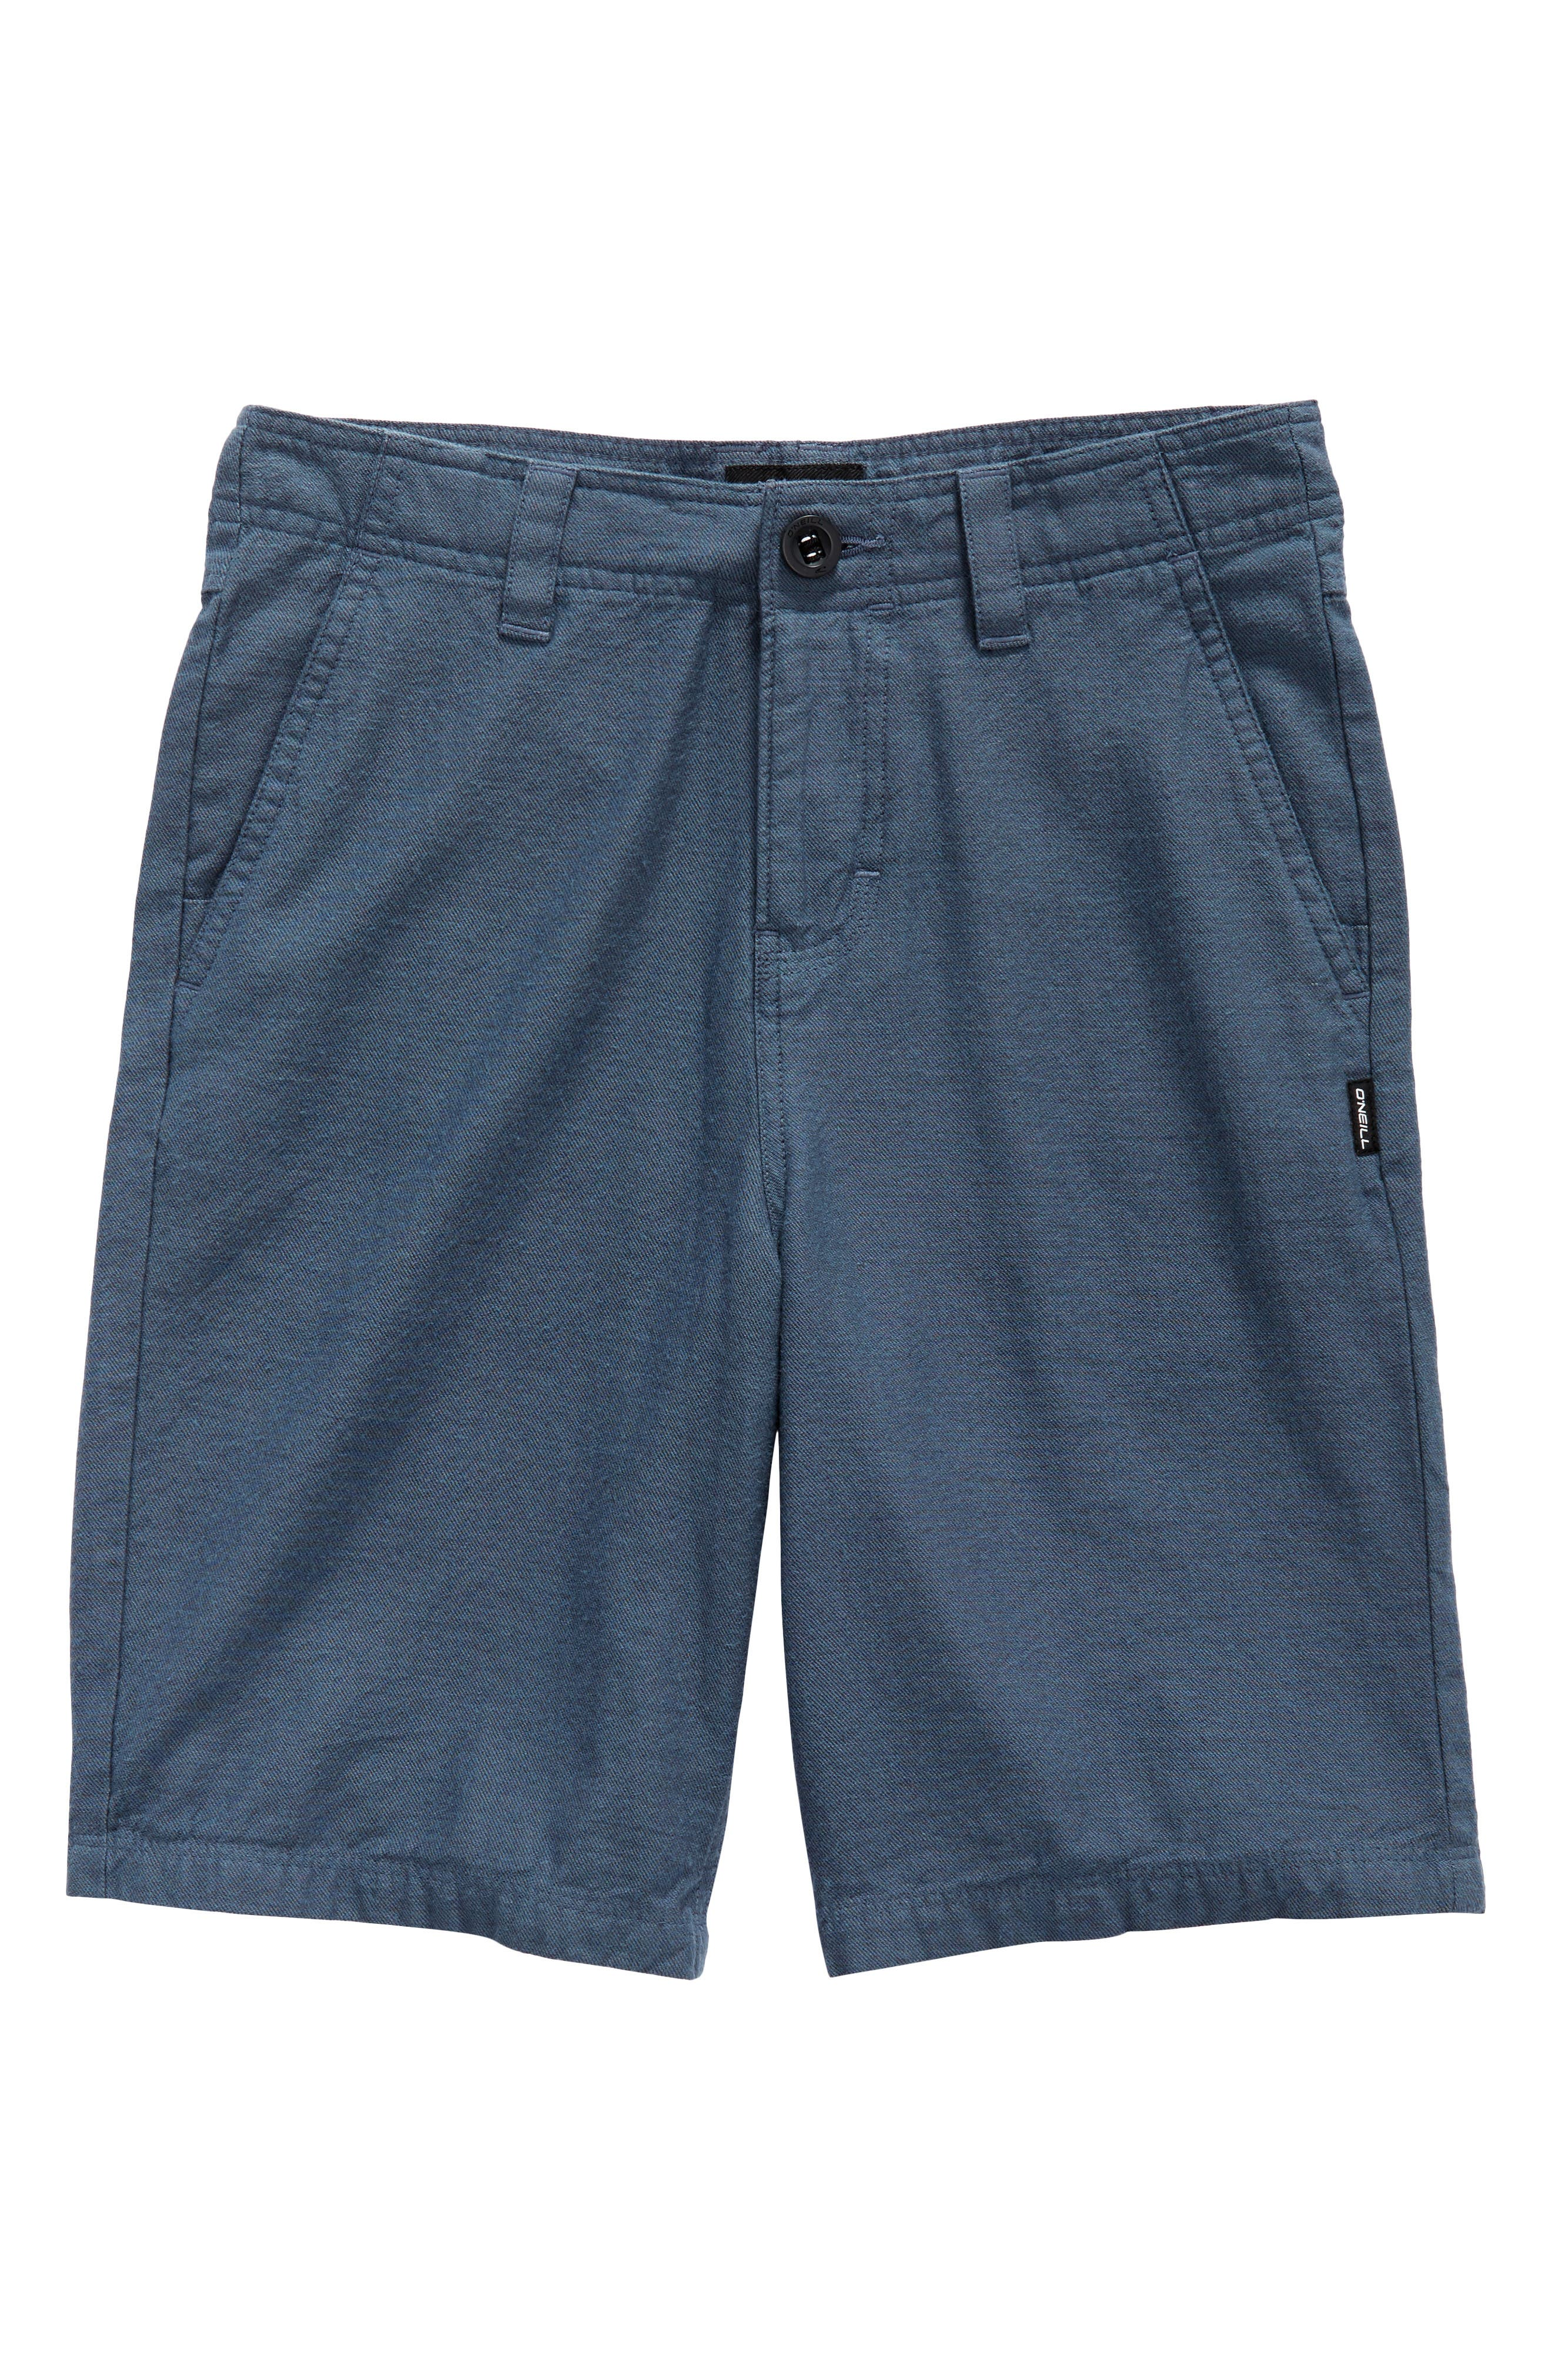 Scranton Chino Shorts,                         Main,                         color, 028